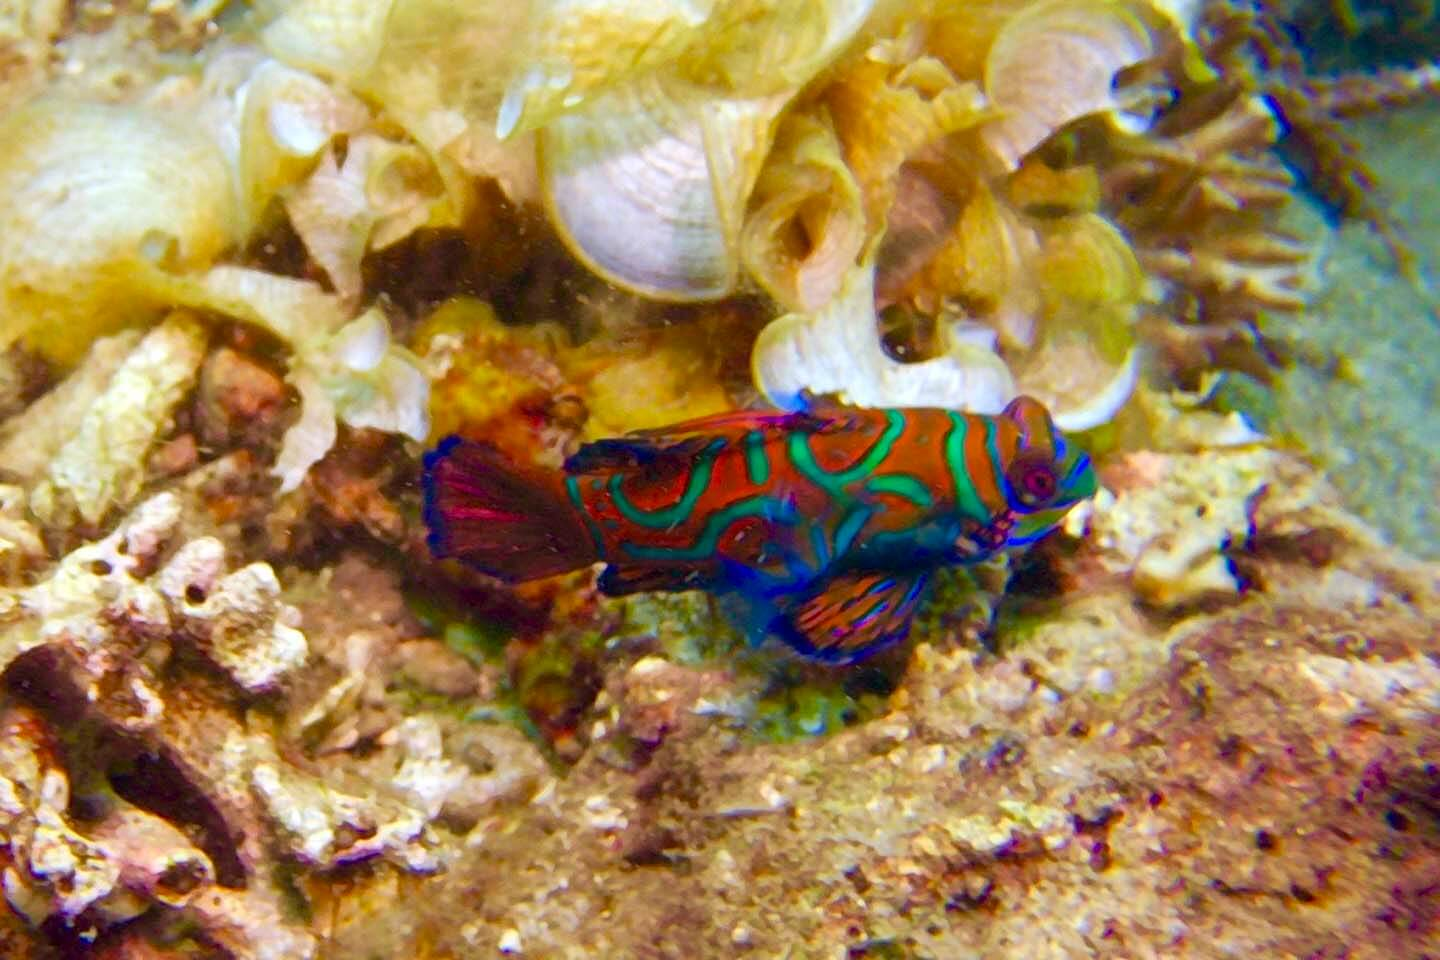 Red Mandarinfish spotted in Lembeh, Indonesia. Photo by Shawna Lietzke